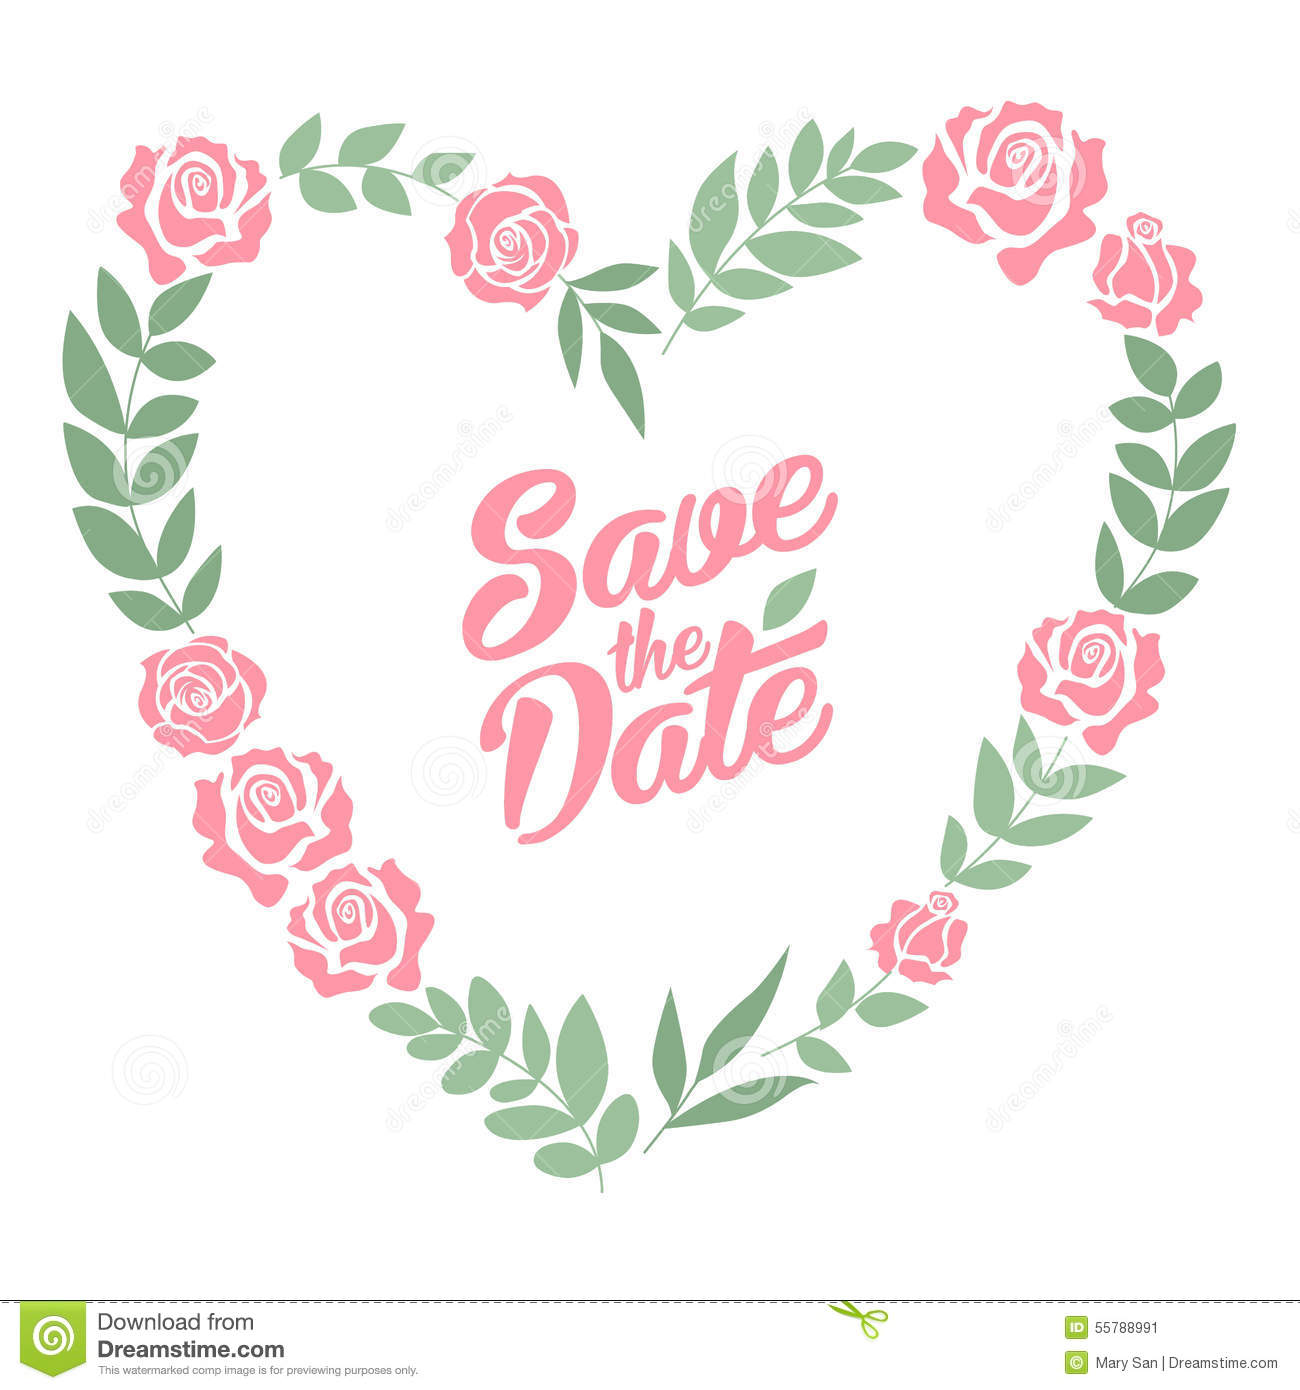 867916ef82162 Save The Date Floral Heart Card. Vintage Wedding Stock Vector ...